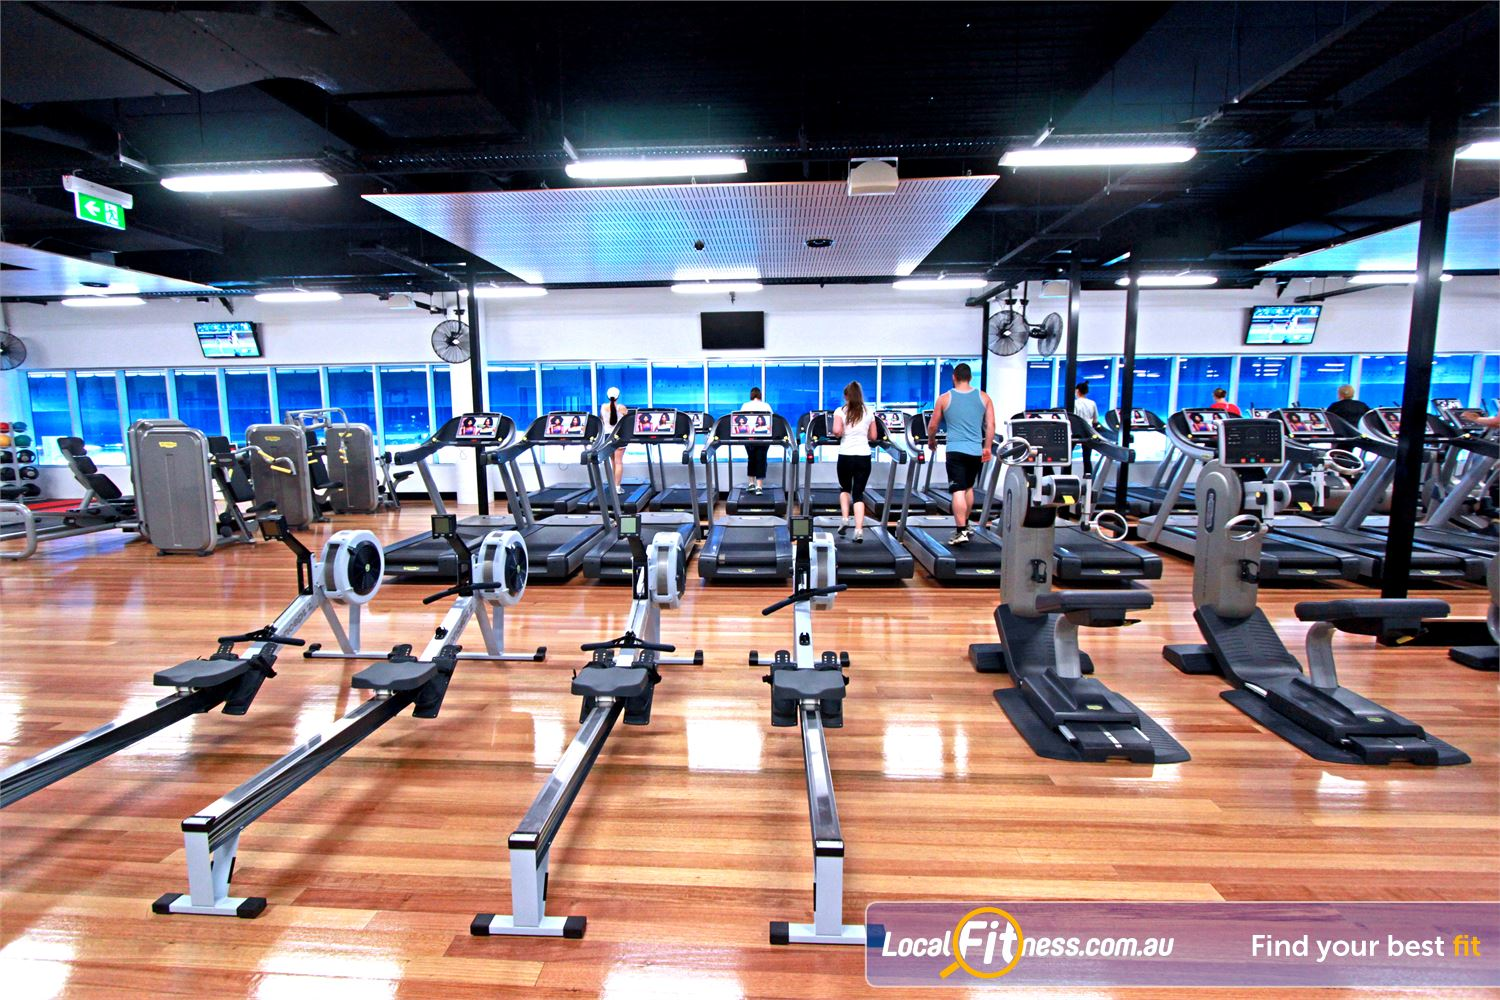 WaterMarc Aquatic & Leisure Centre Greensborough Our cardio area features calming views overlooking the pool.